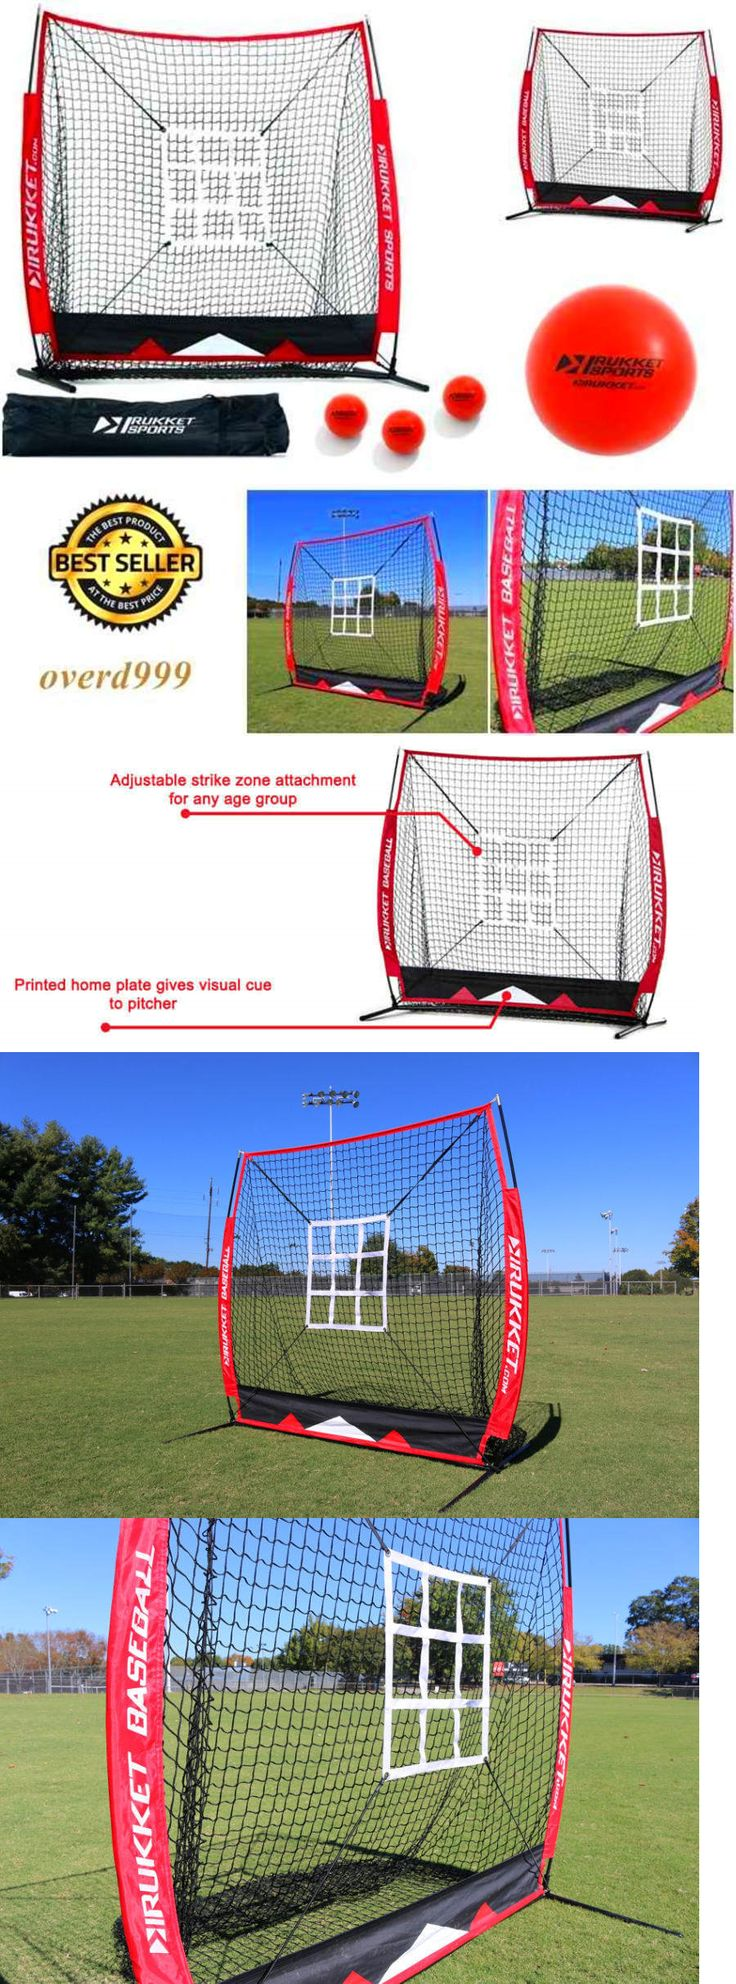 Batting Cages and Netting 50809: Jugs Baseball Softball Hitting Instant Screen Target Net Frame Practice Training -> BUY IT NOW ONLY: $105.23 on eBay!